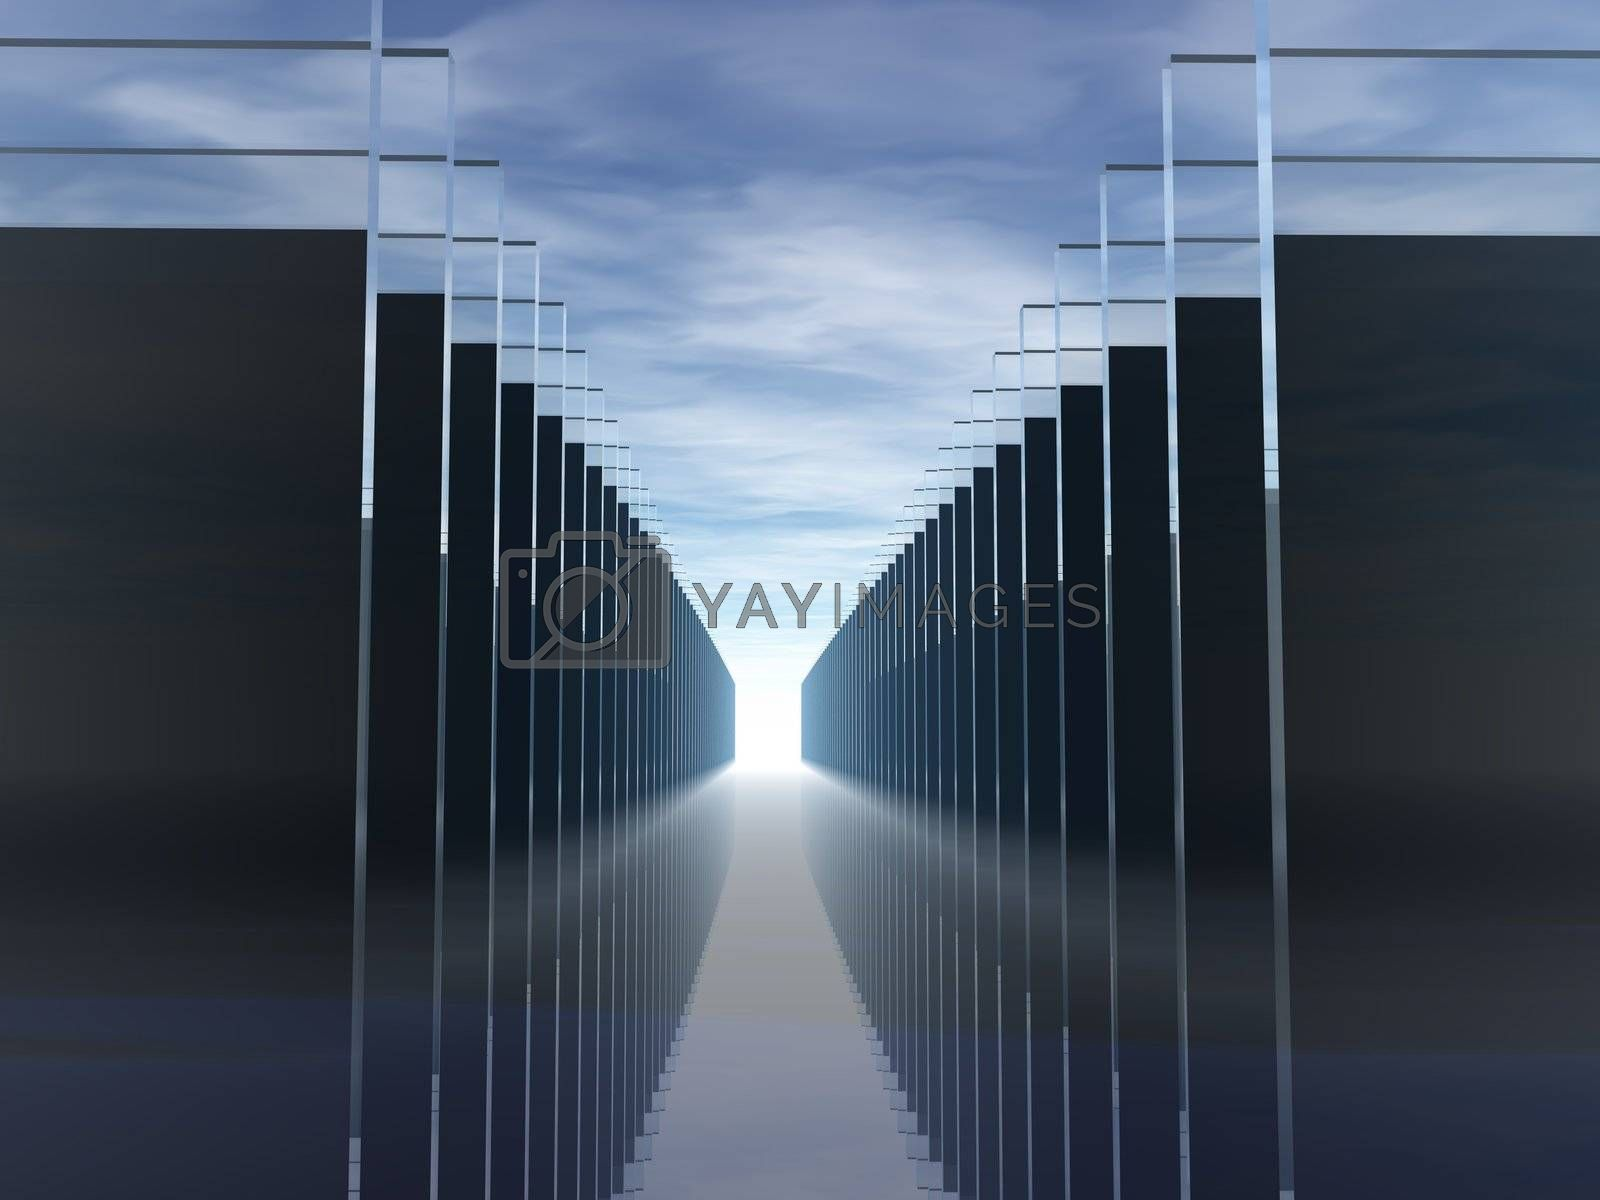 abstract background - windowpanes in a row under blue sky - 3d illustration